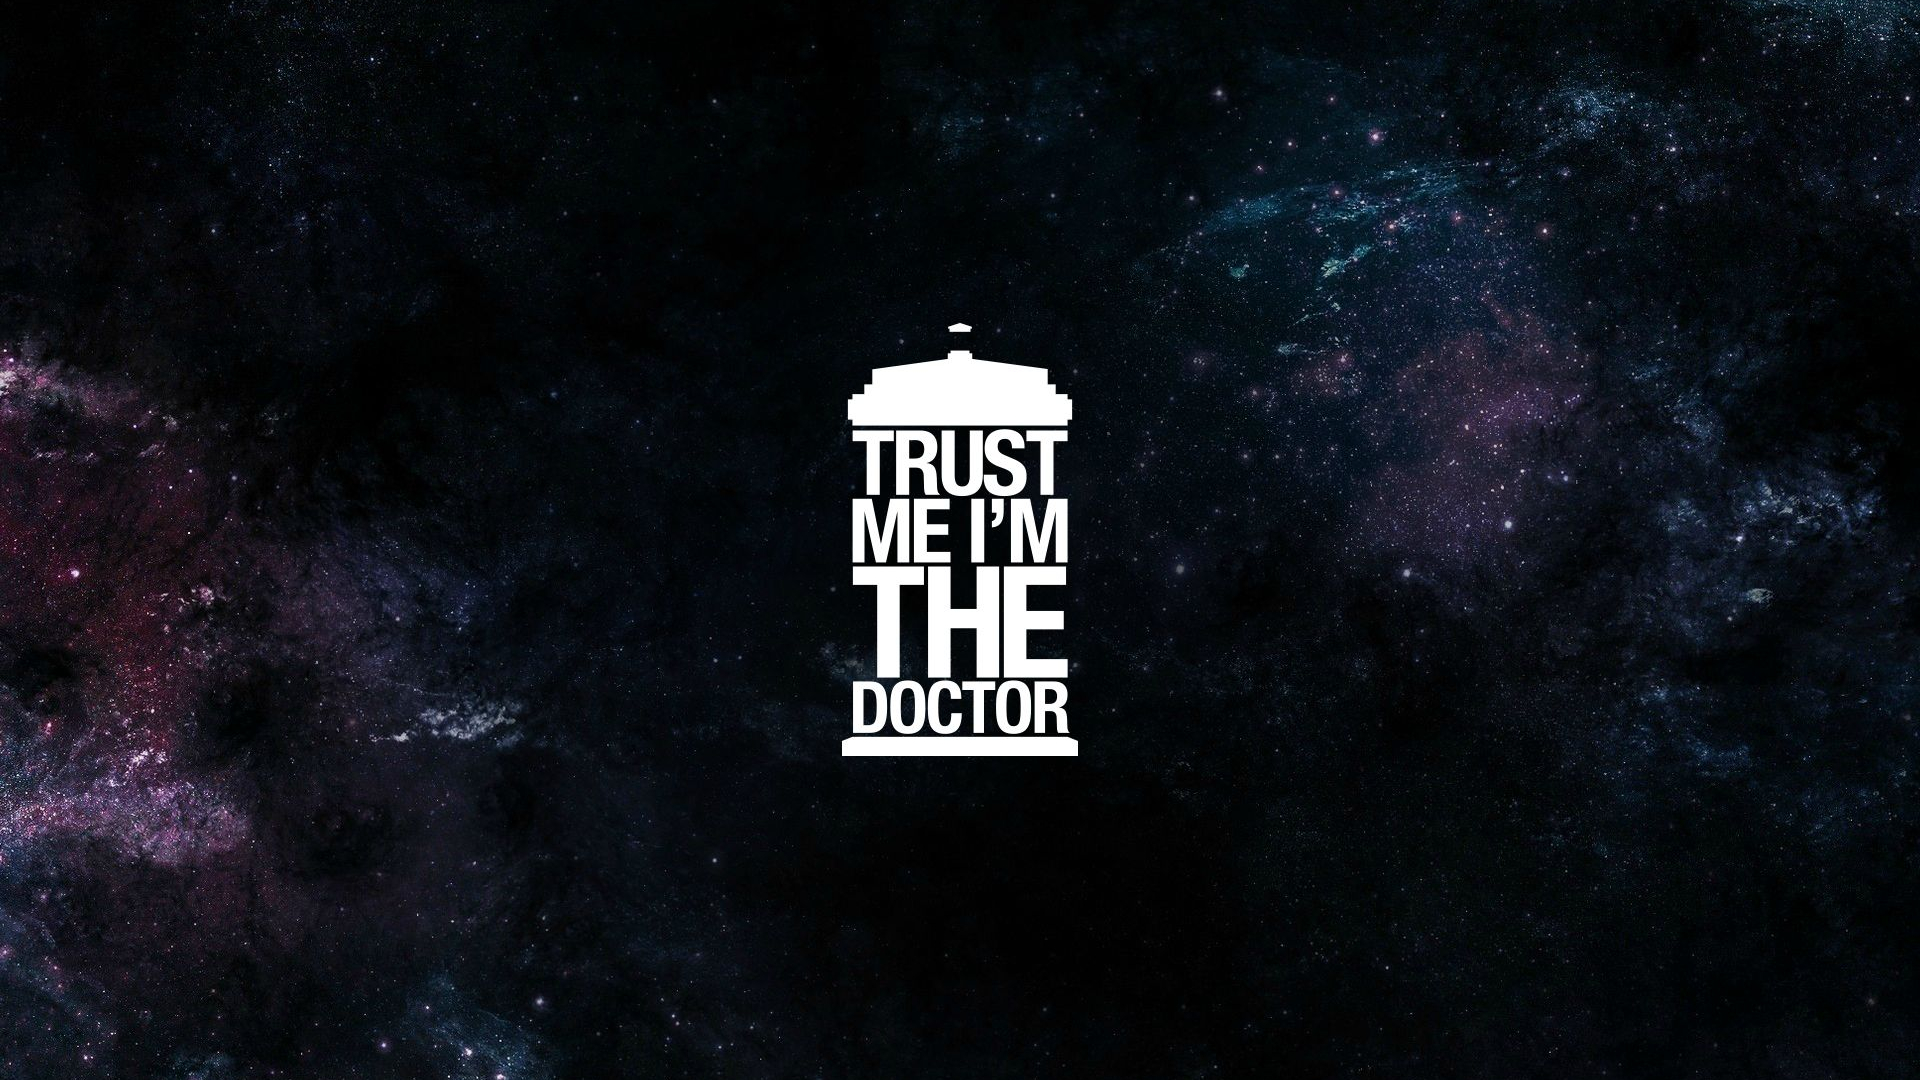 Free Download Doctor Who Wallpapers 1920x1200 For Your Desktop